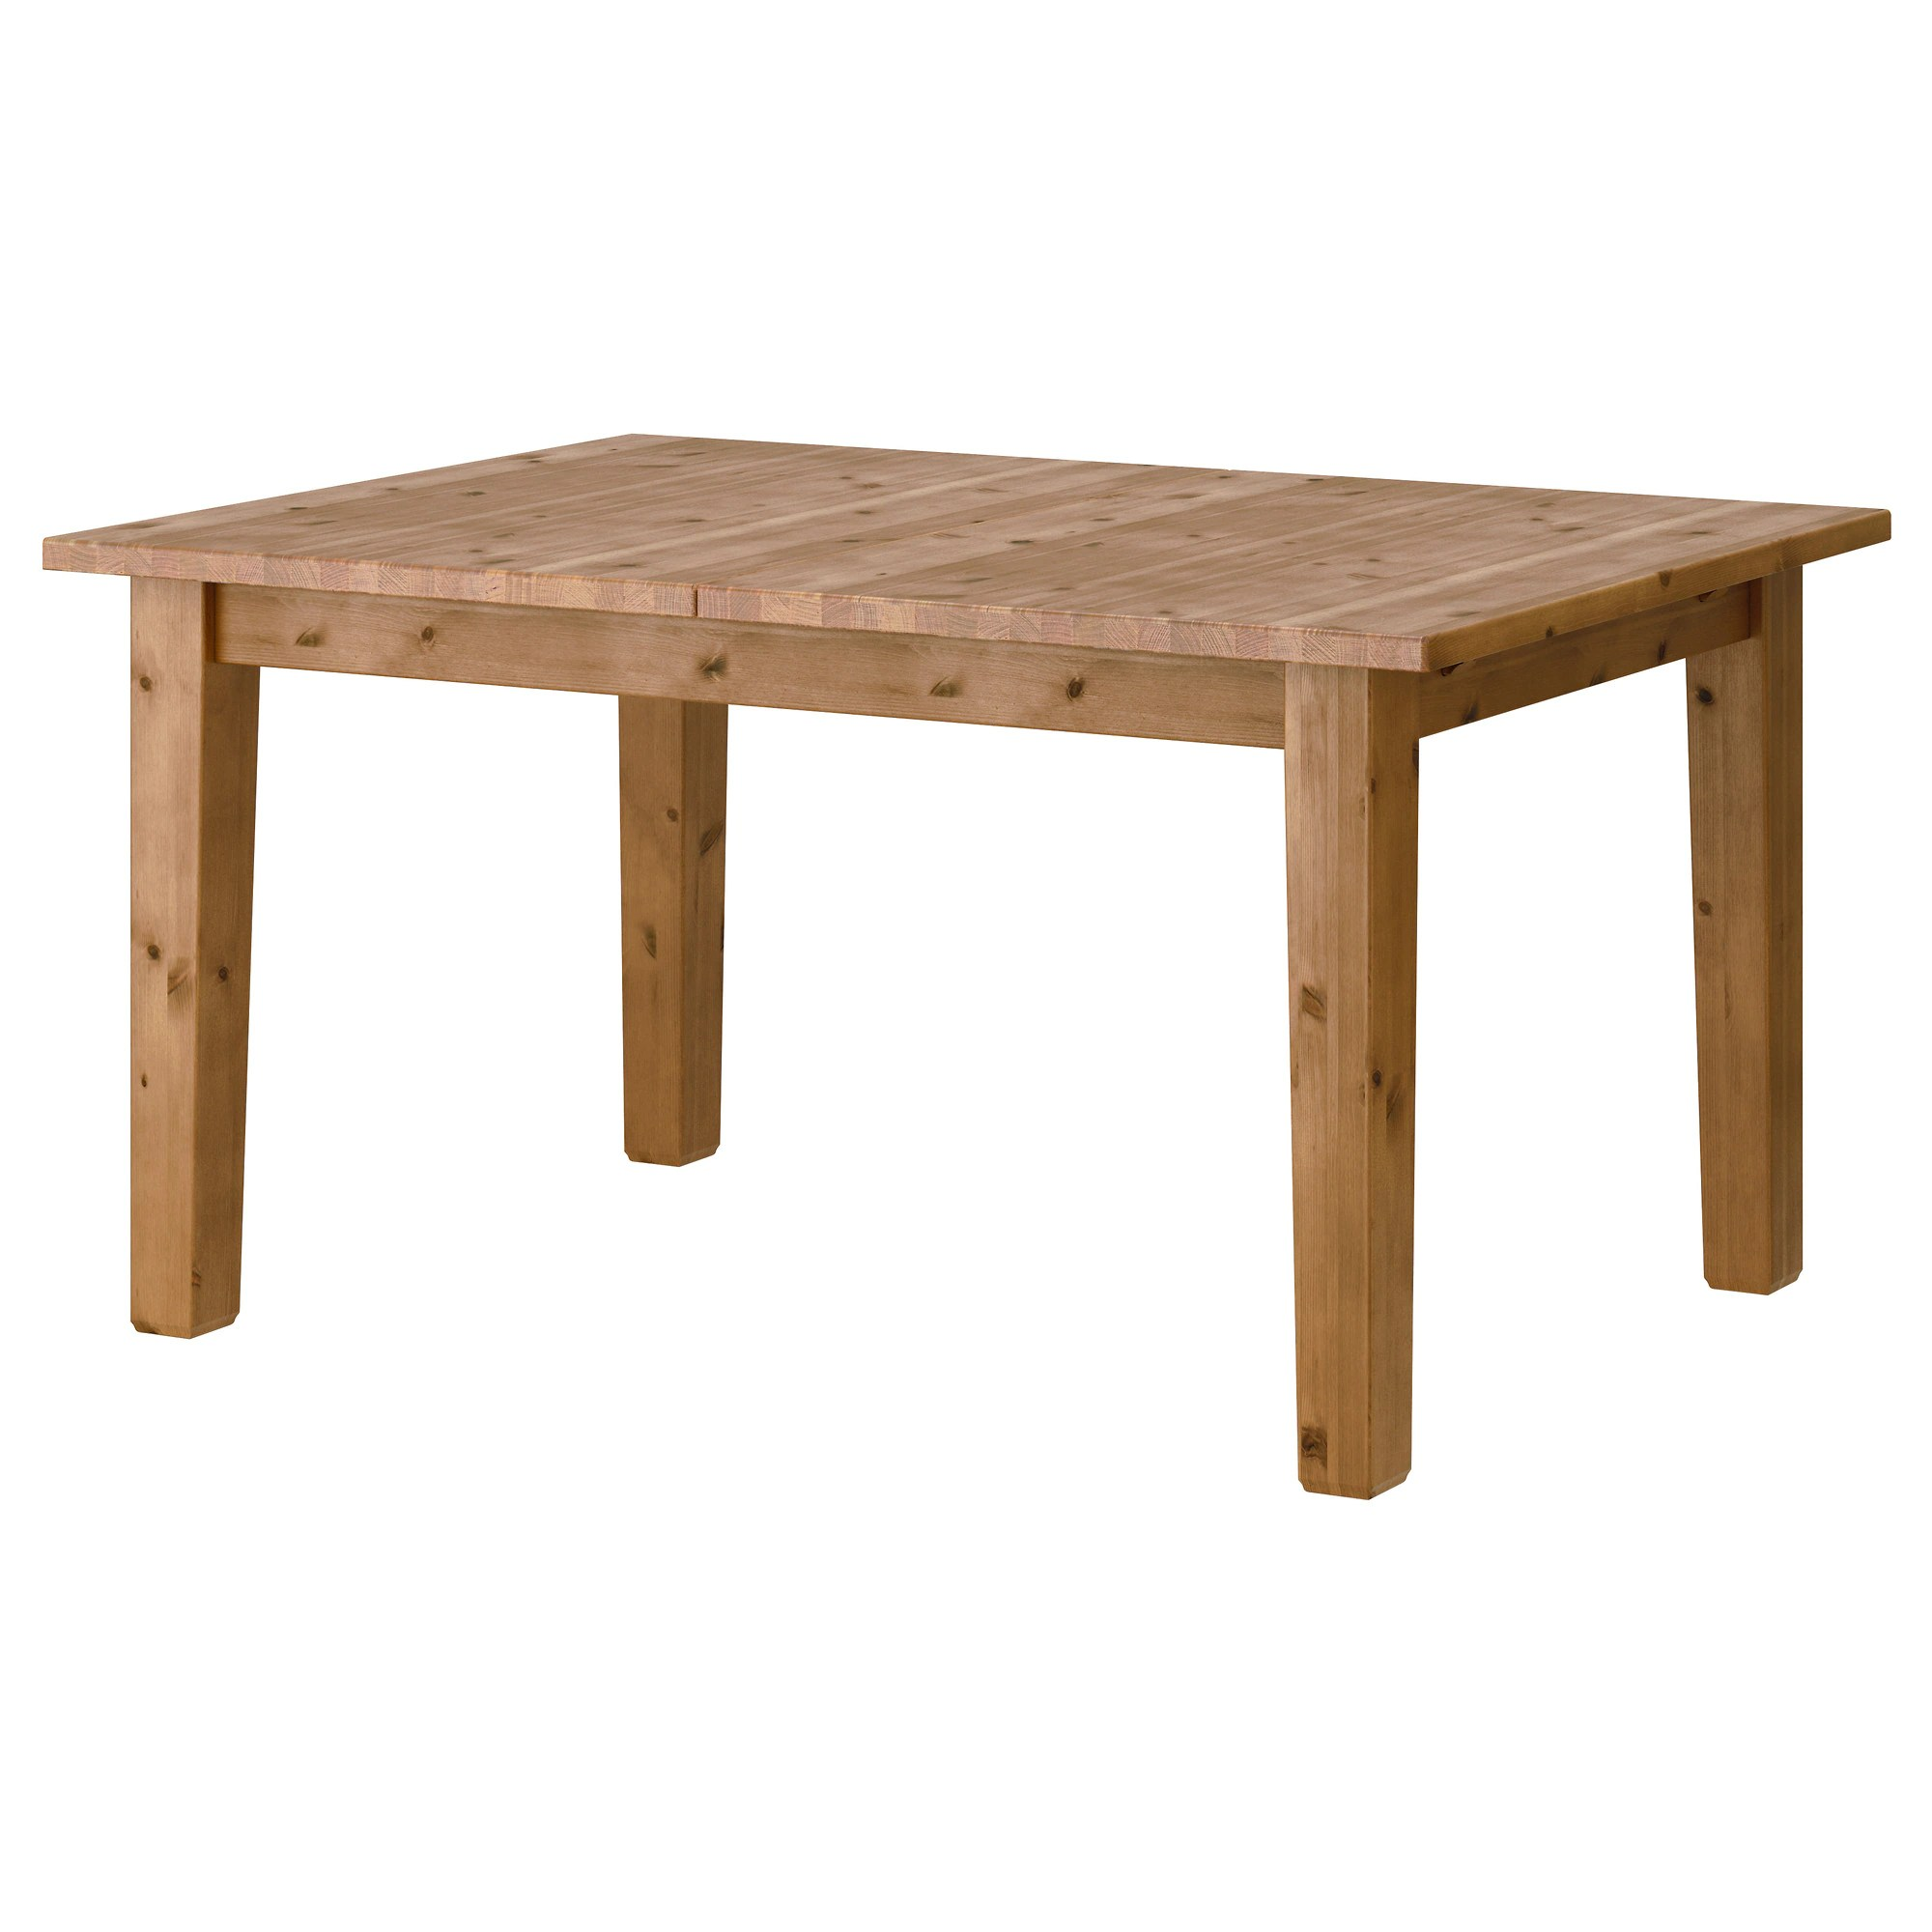 Table Salle A Manger Extensible 14 Personnes StornÄs Table Extensible Vernis Effet Anc